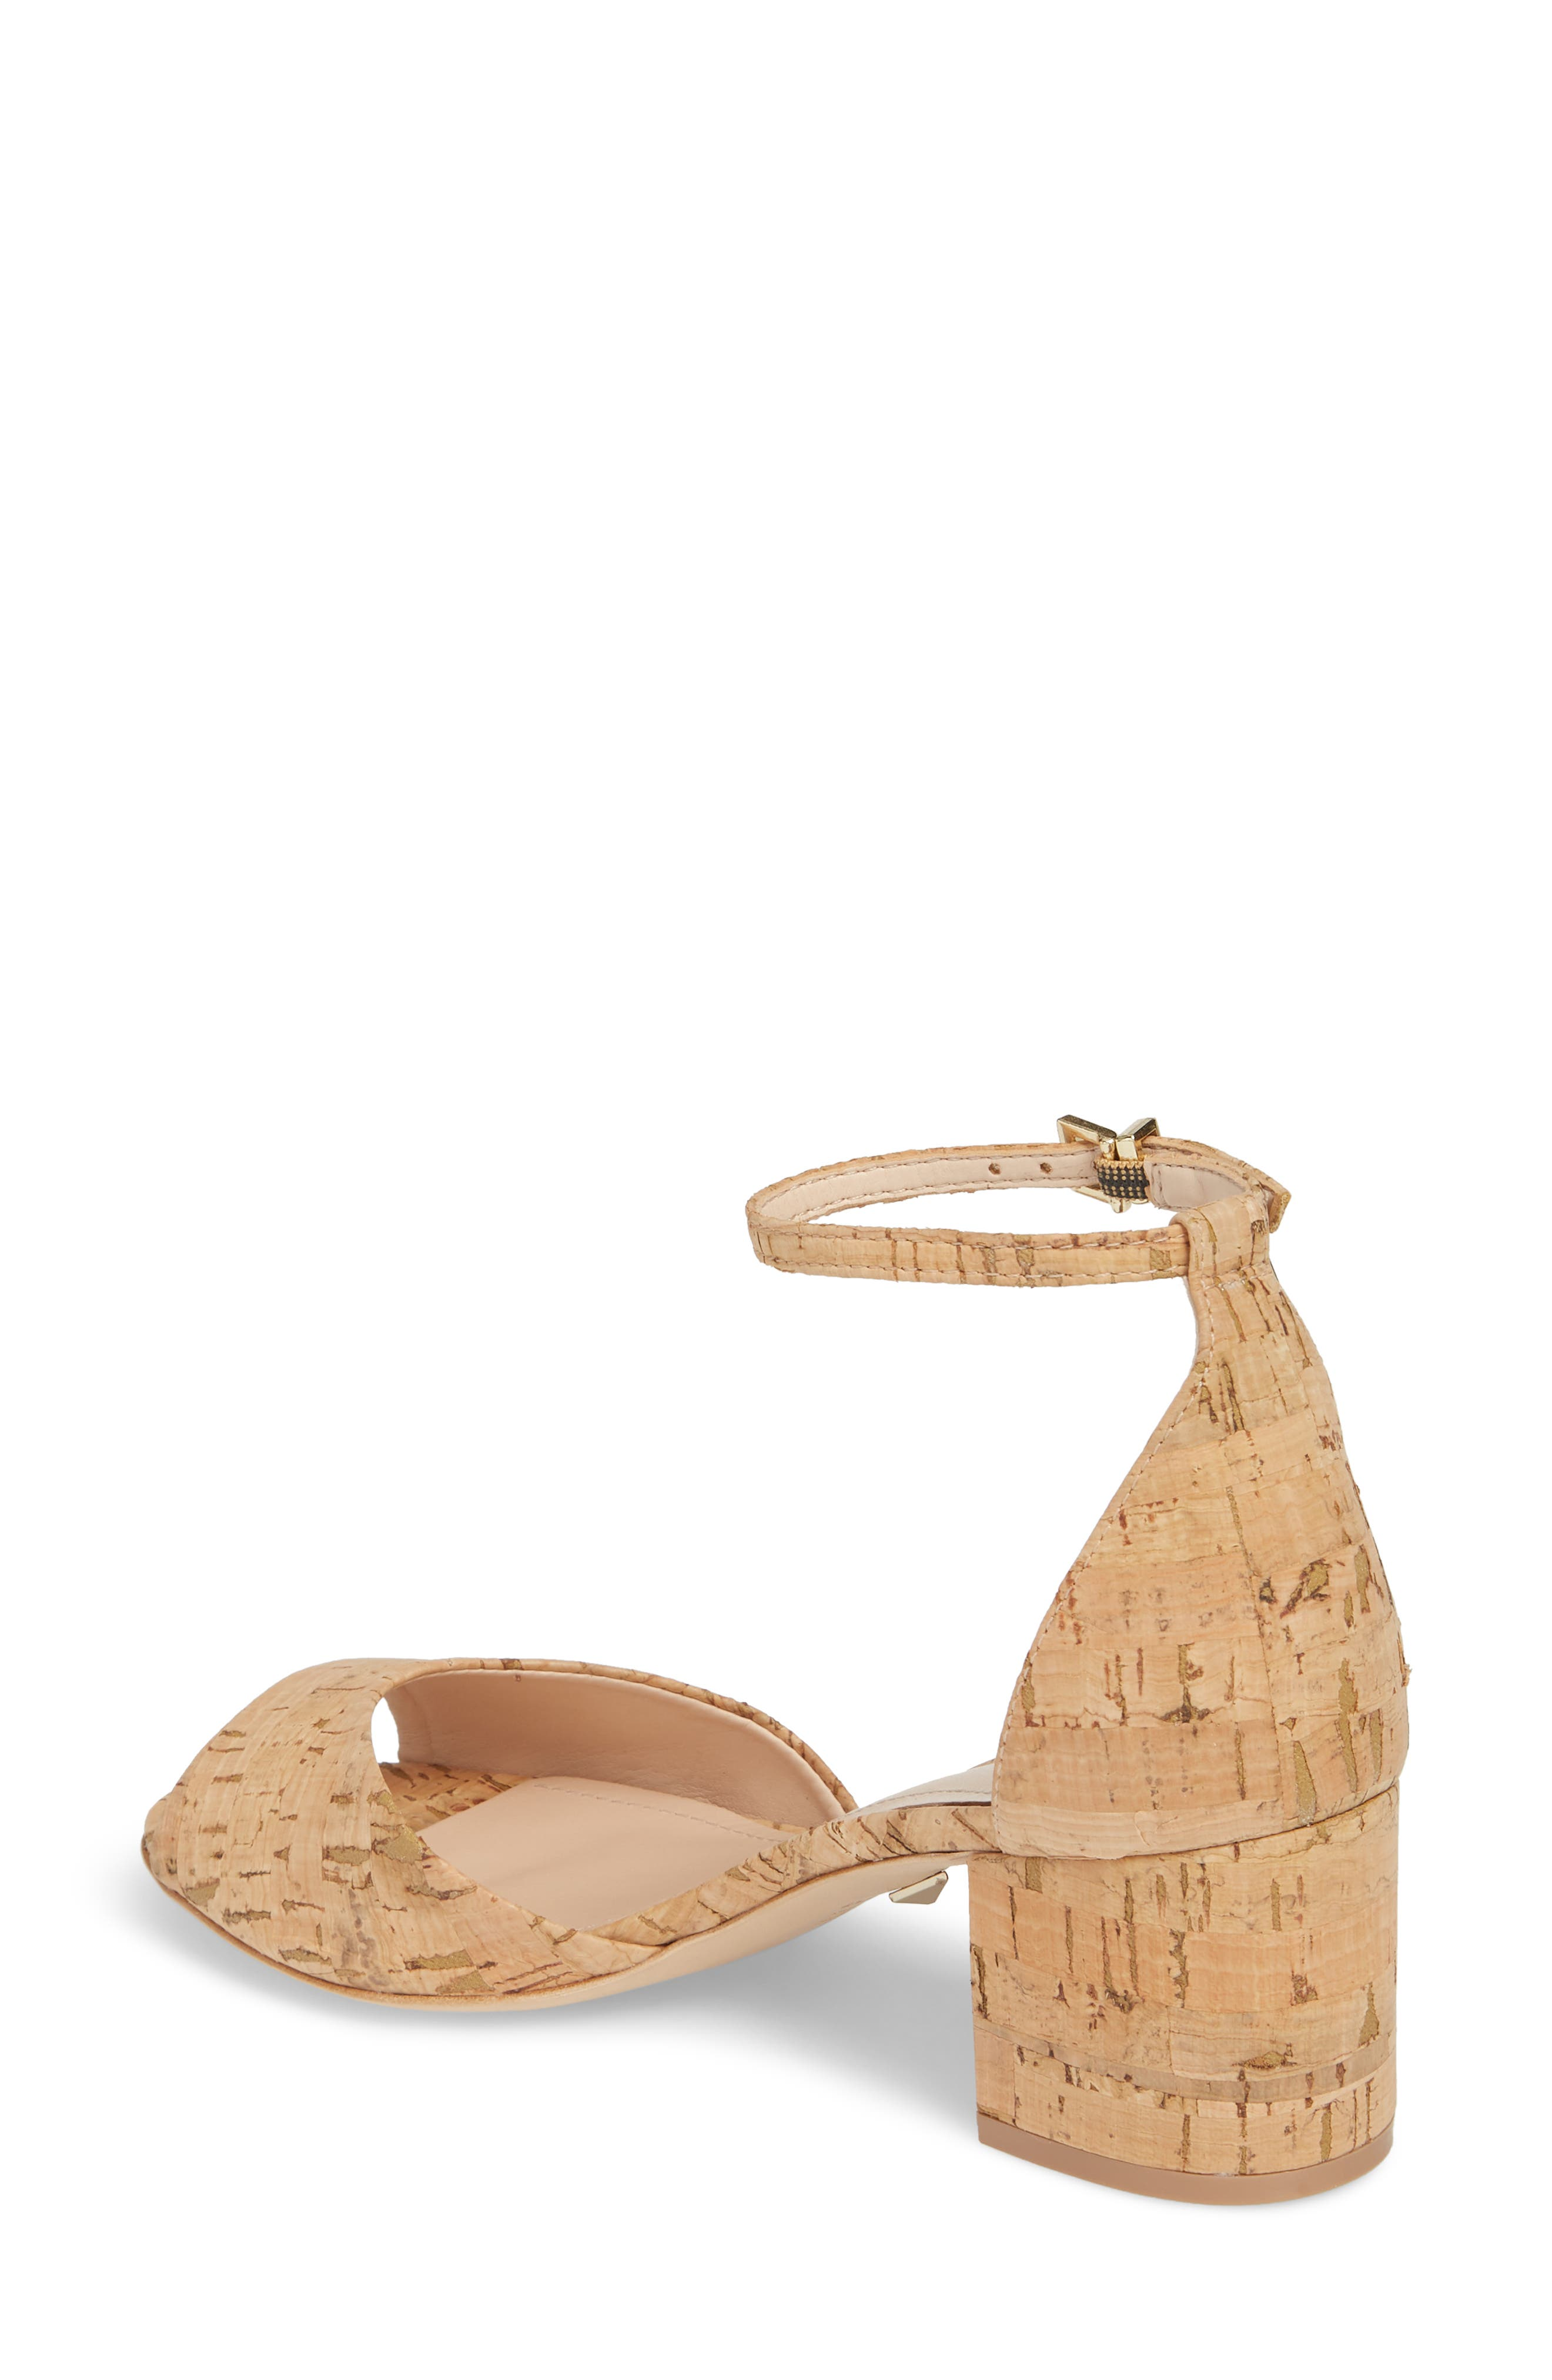 Roama Block Heel Sandal,                             Alternate thumbnail 2, color,                             Natural